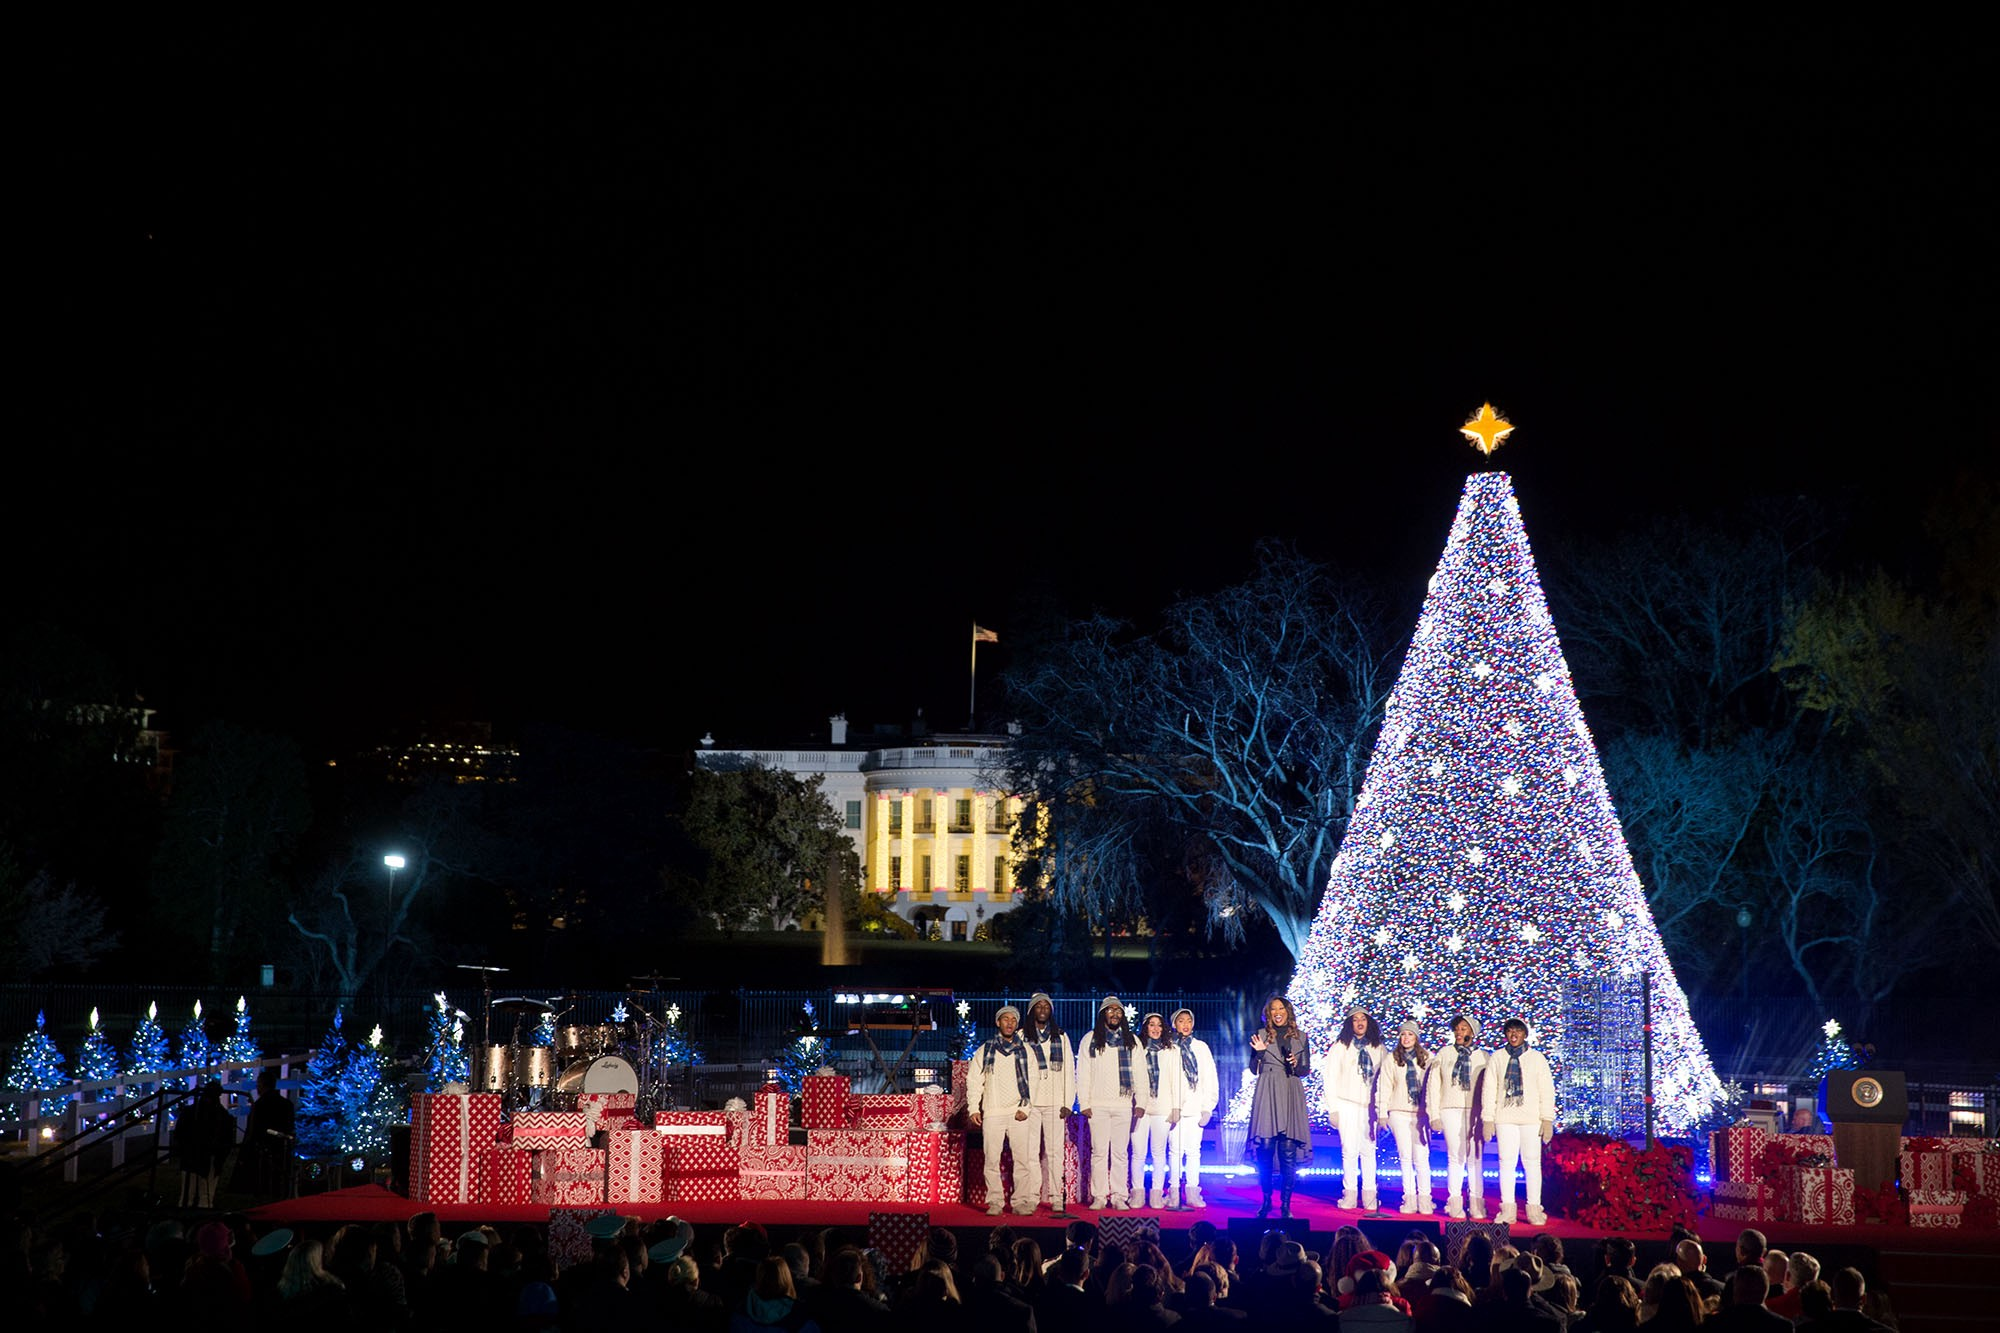 yolanda adams performs during the national christmas tree lighting on the ellipse in washington dc dec 1 2016 official white house photo by lawrence